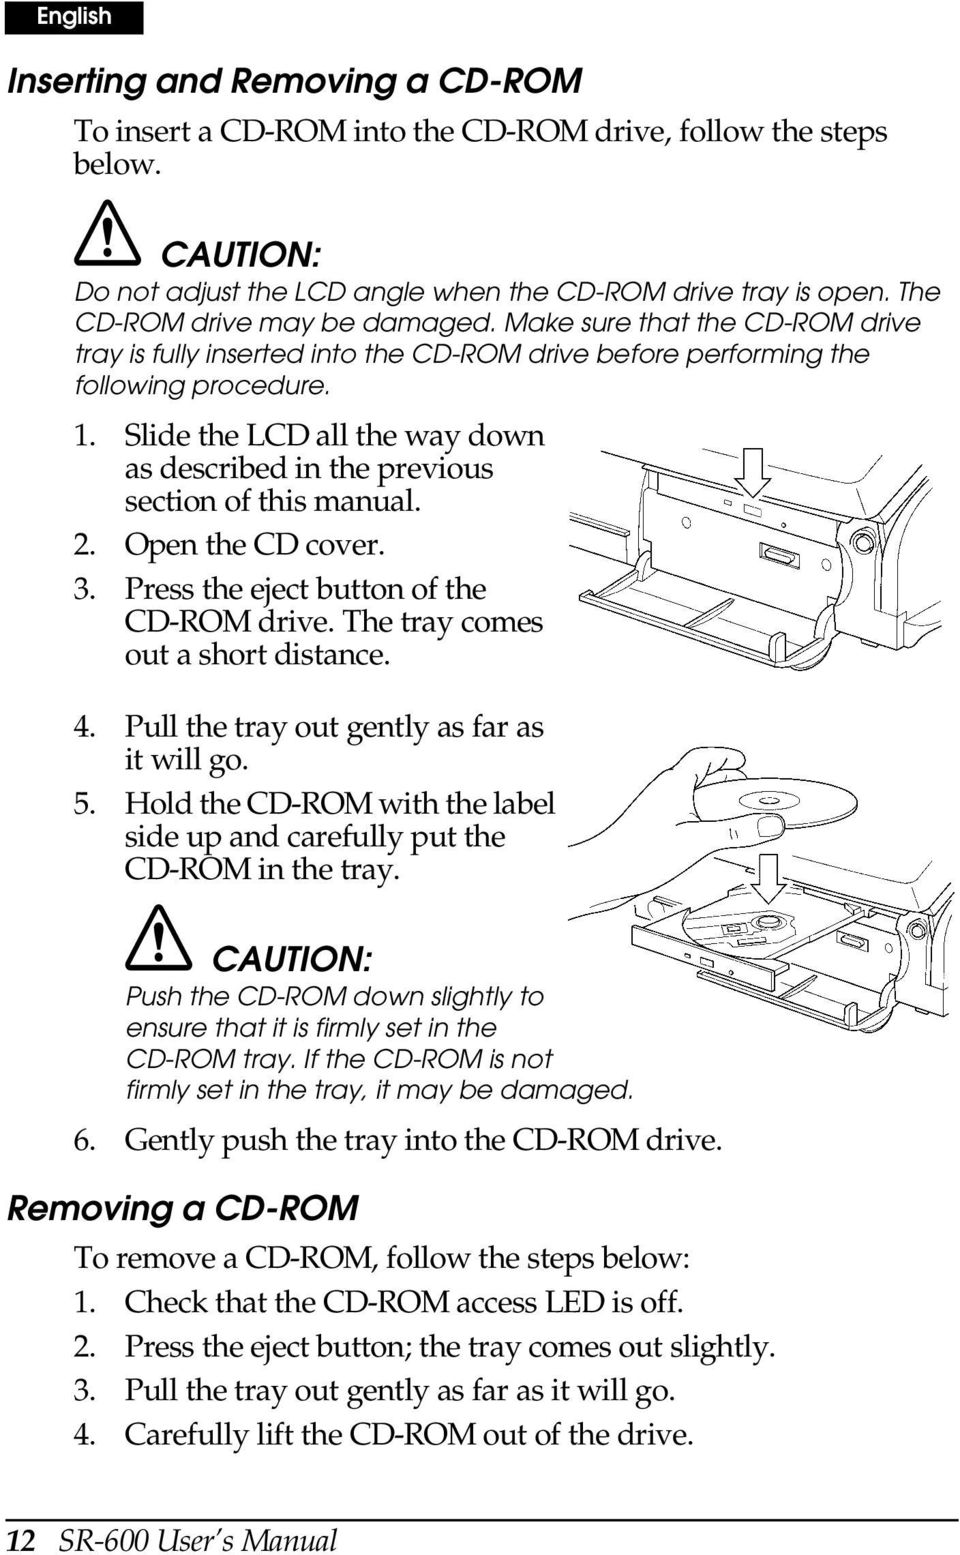 Slide the LCD all the way down as described in the previous section of this manual. 2. Open the CD cover. 3. Press the eject button of the CD-ROM drive. The tray comes out a short distance. 4.